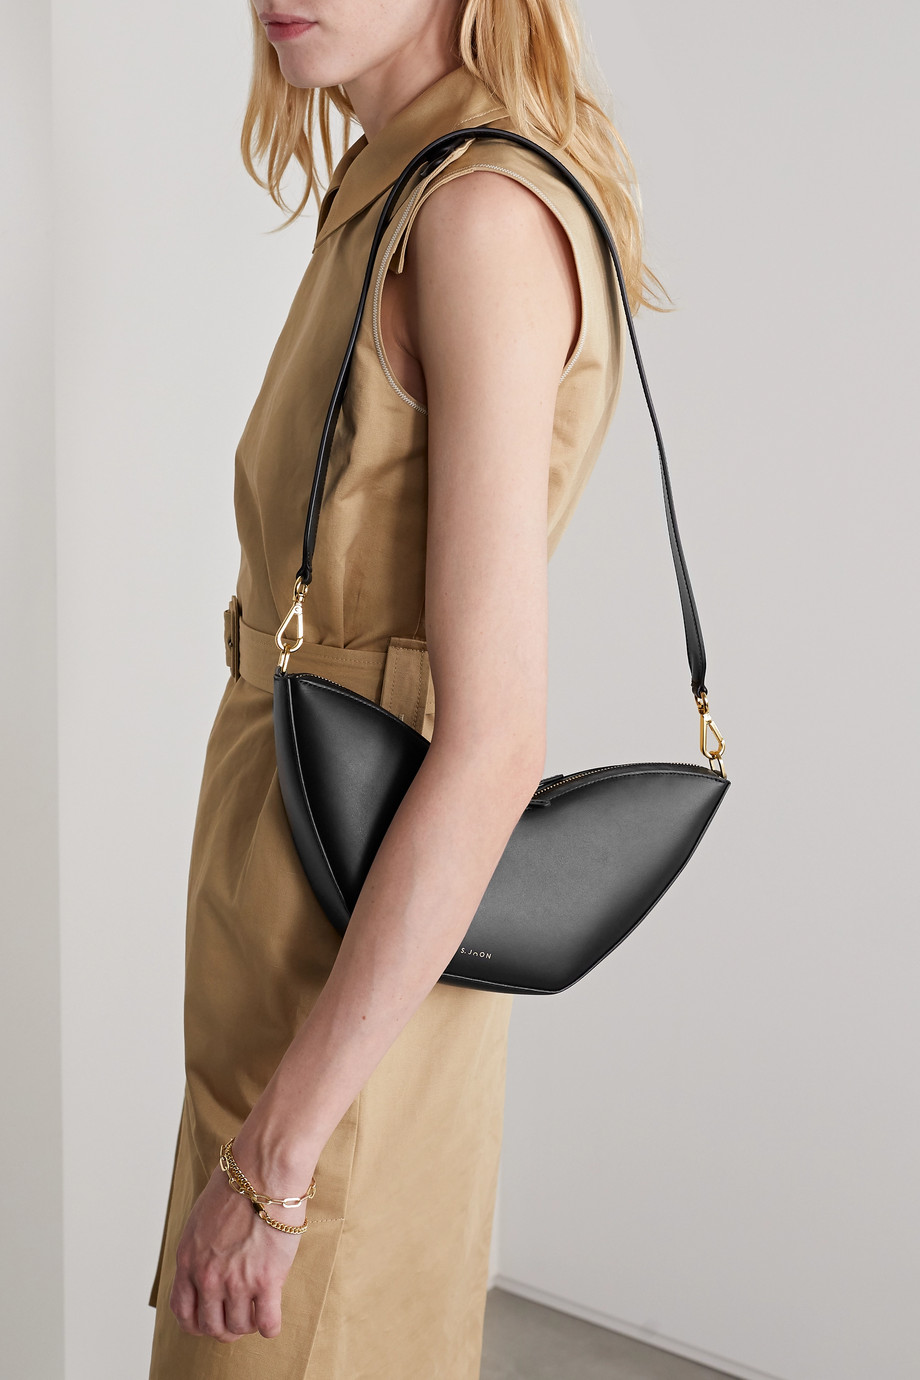 S.Joon Tulip leather shoulder bag